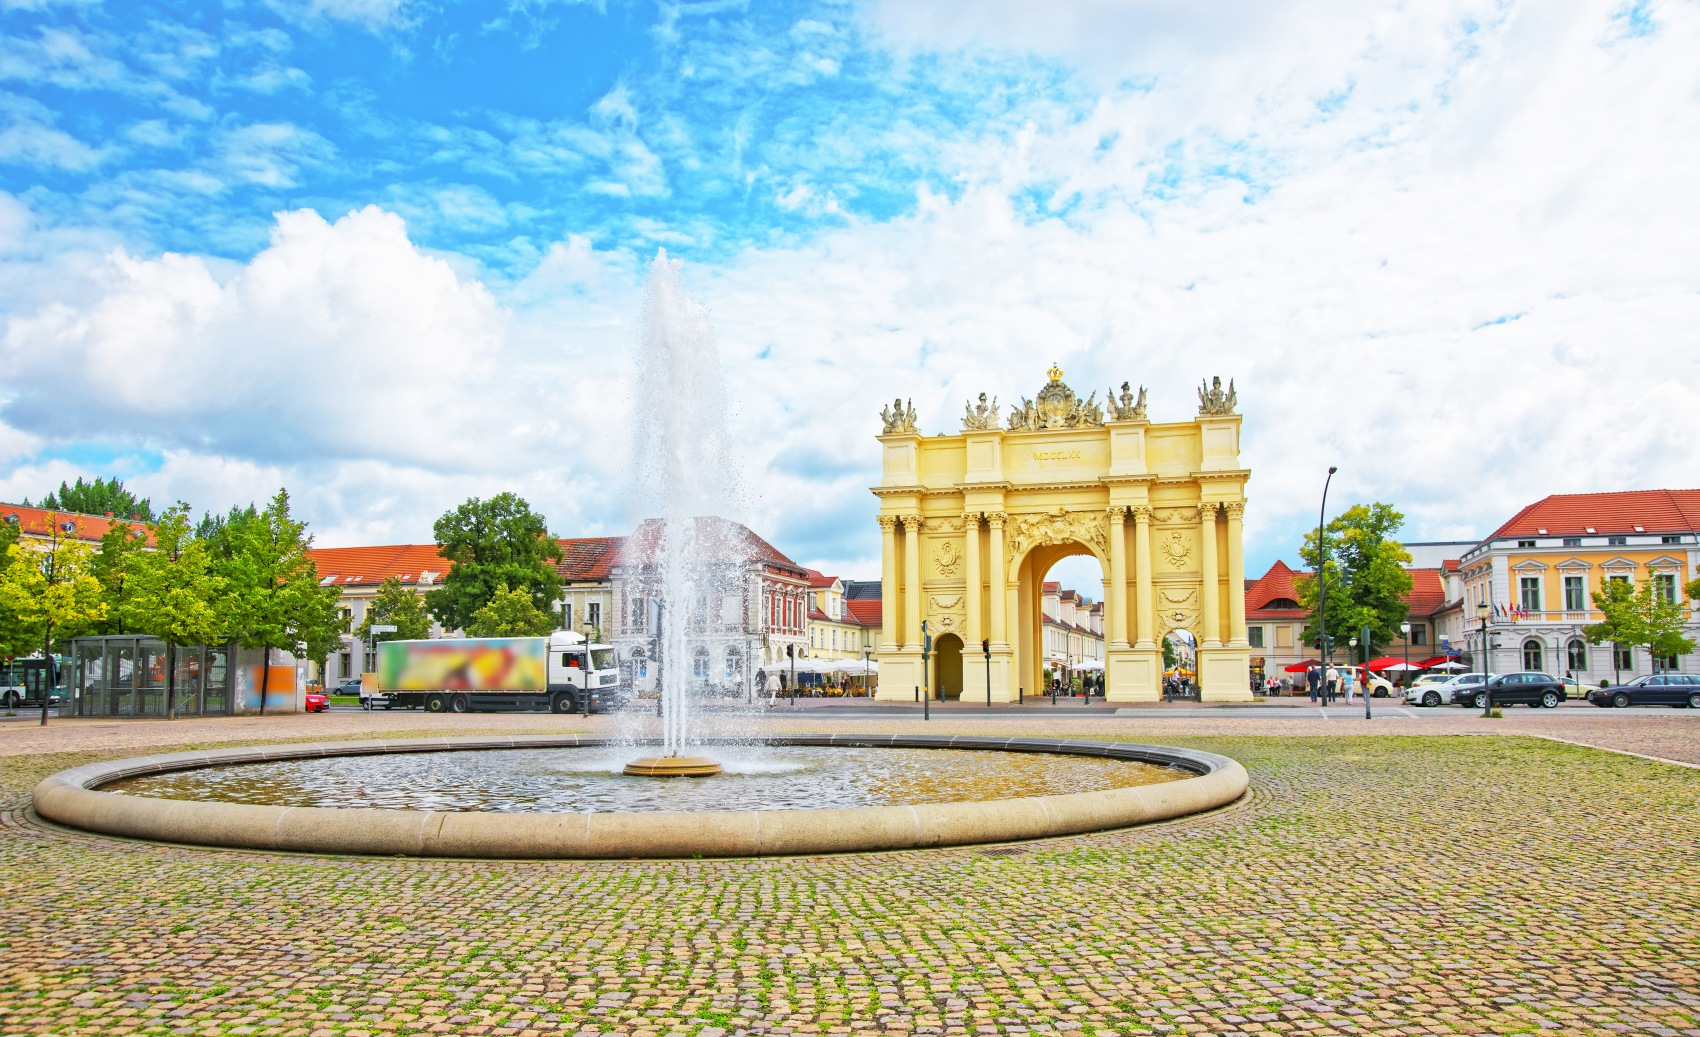 Street view on Brandenburg Gate and fountain in Potsdam